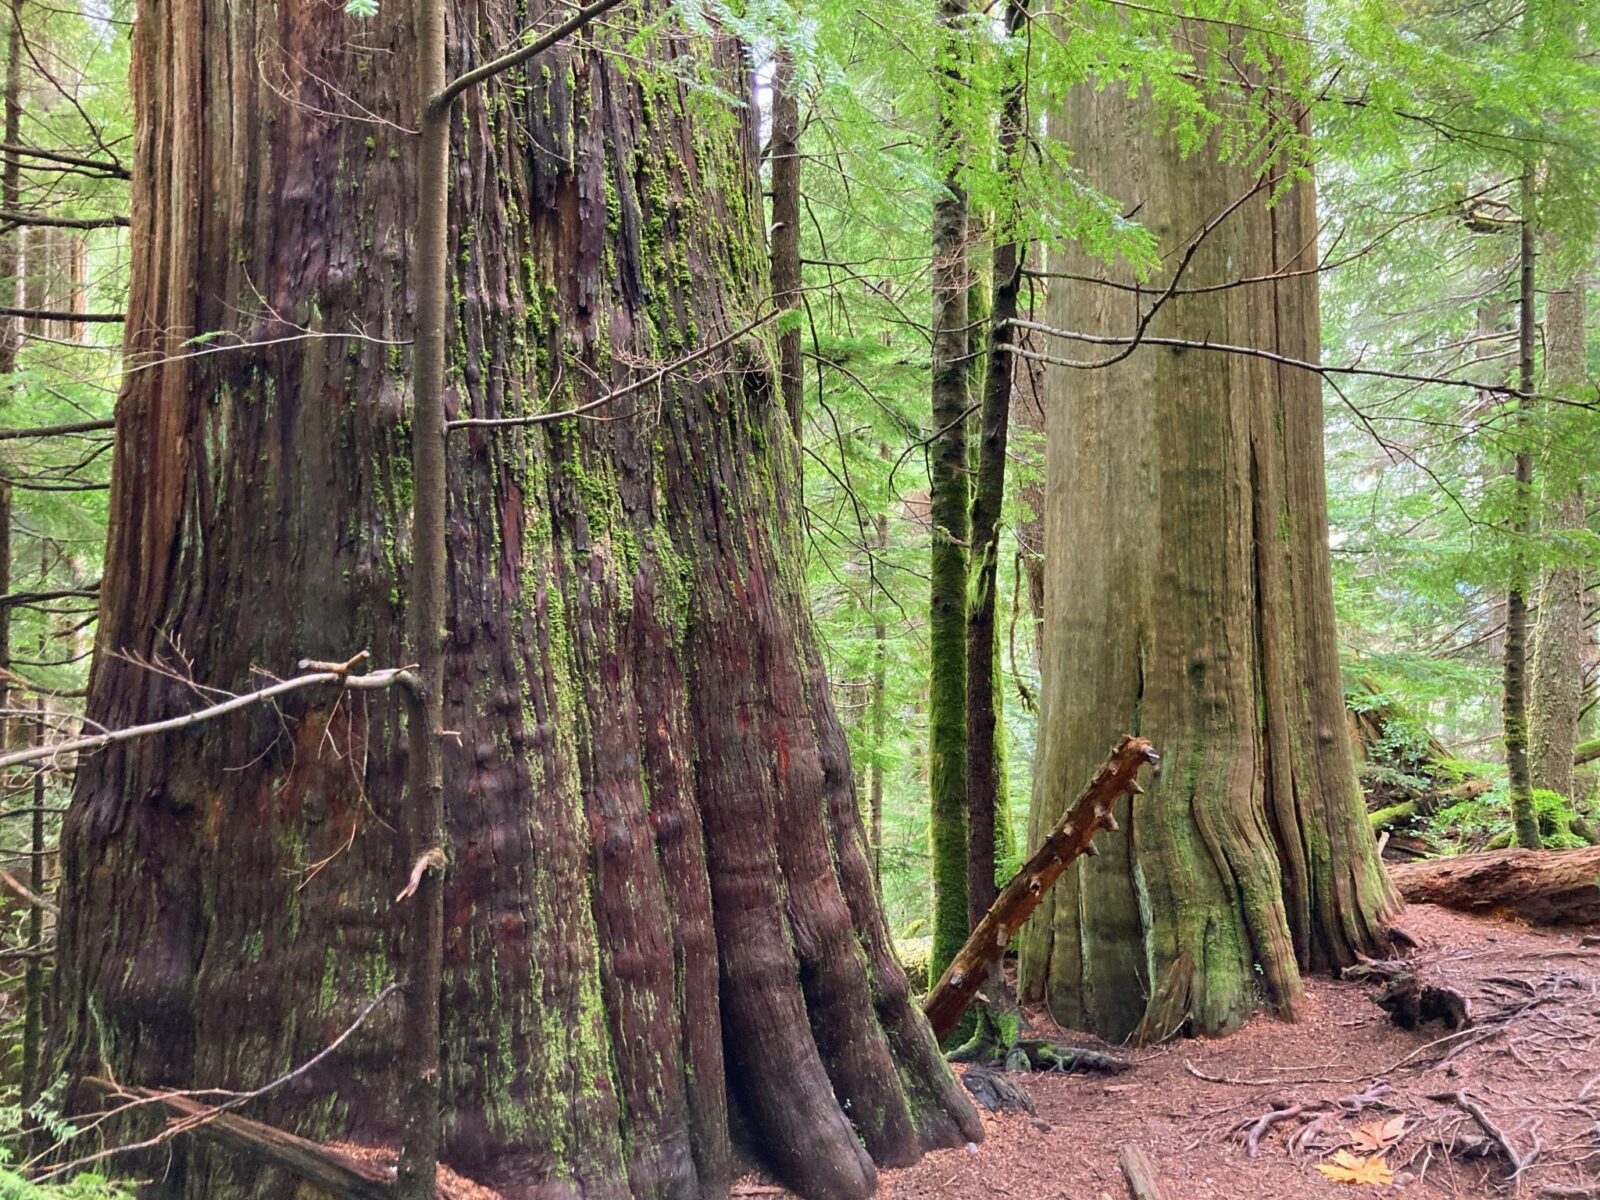 Two old growth cedar trees in the forest next to the Heather Lake trail. One tree is larger and darker colored than the other. Both have moss on their bark.